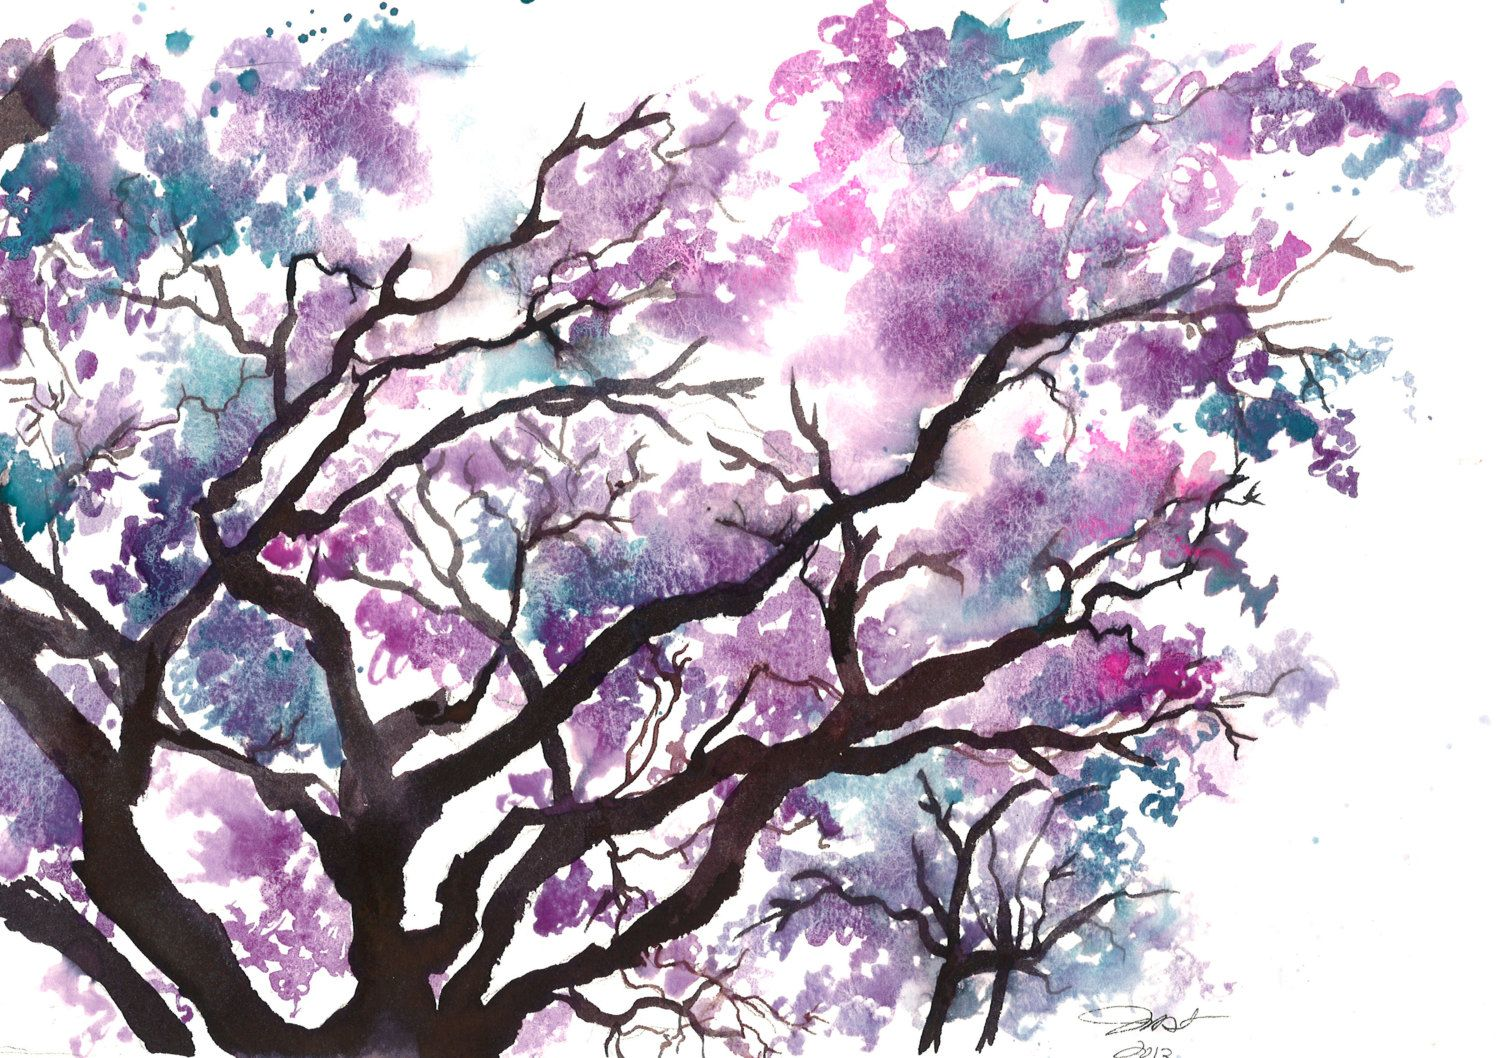 Print from original watercolor study of a jacaranda tree by jessica print from original watercolor study of a jacaranda tree by jessica durrant via etsy gumiabroncs Gallery